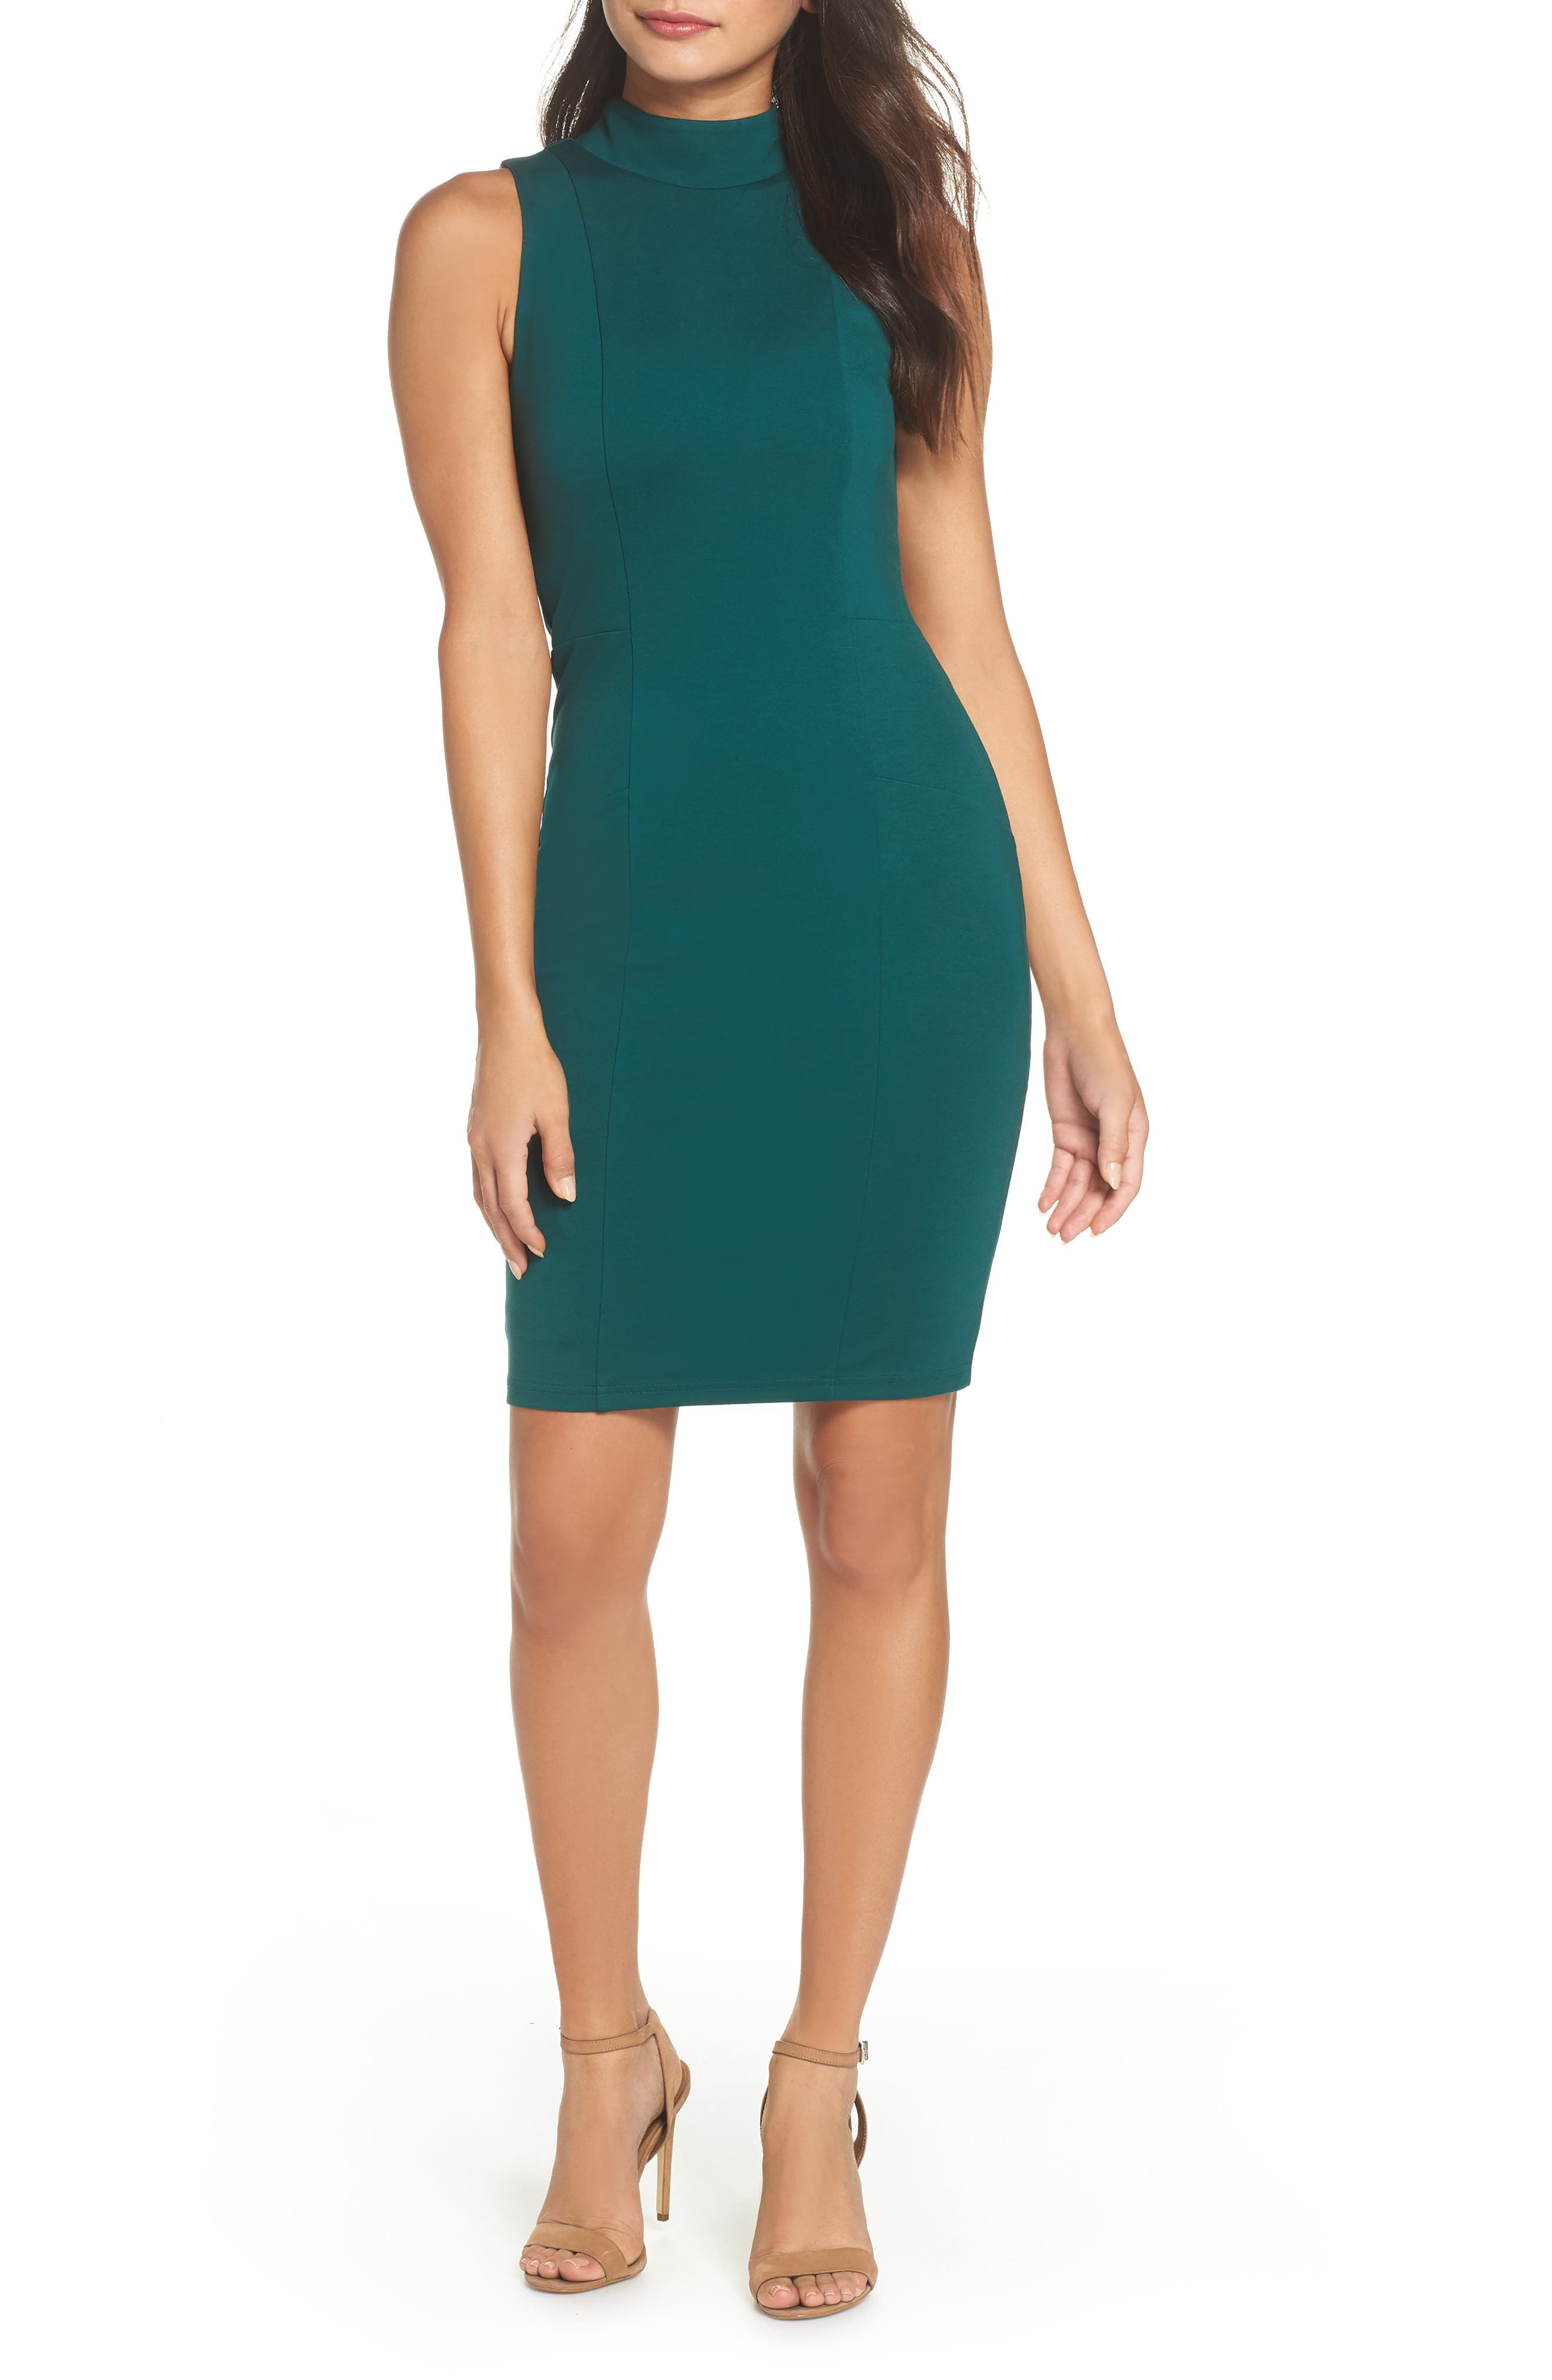 HAVE IT ALL BODY-CON DRESS